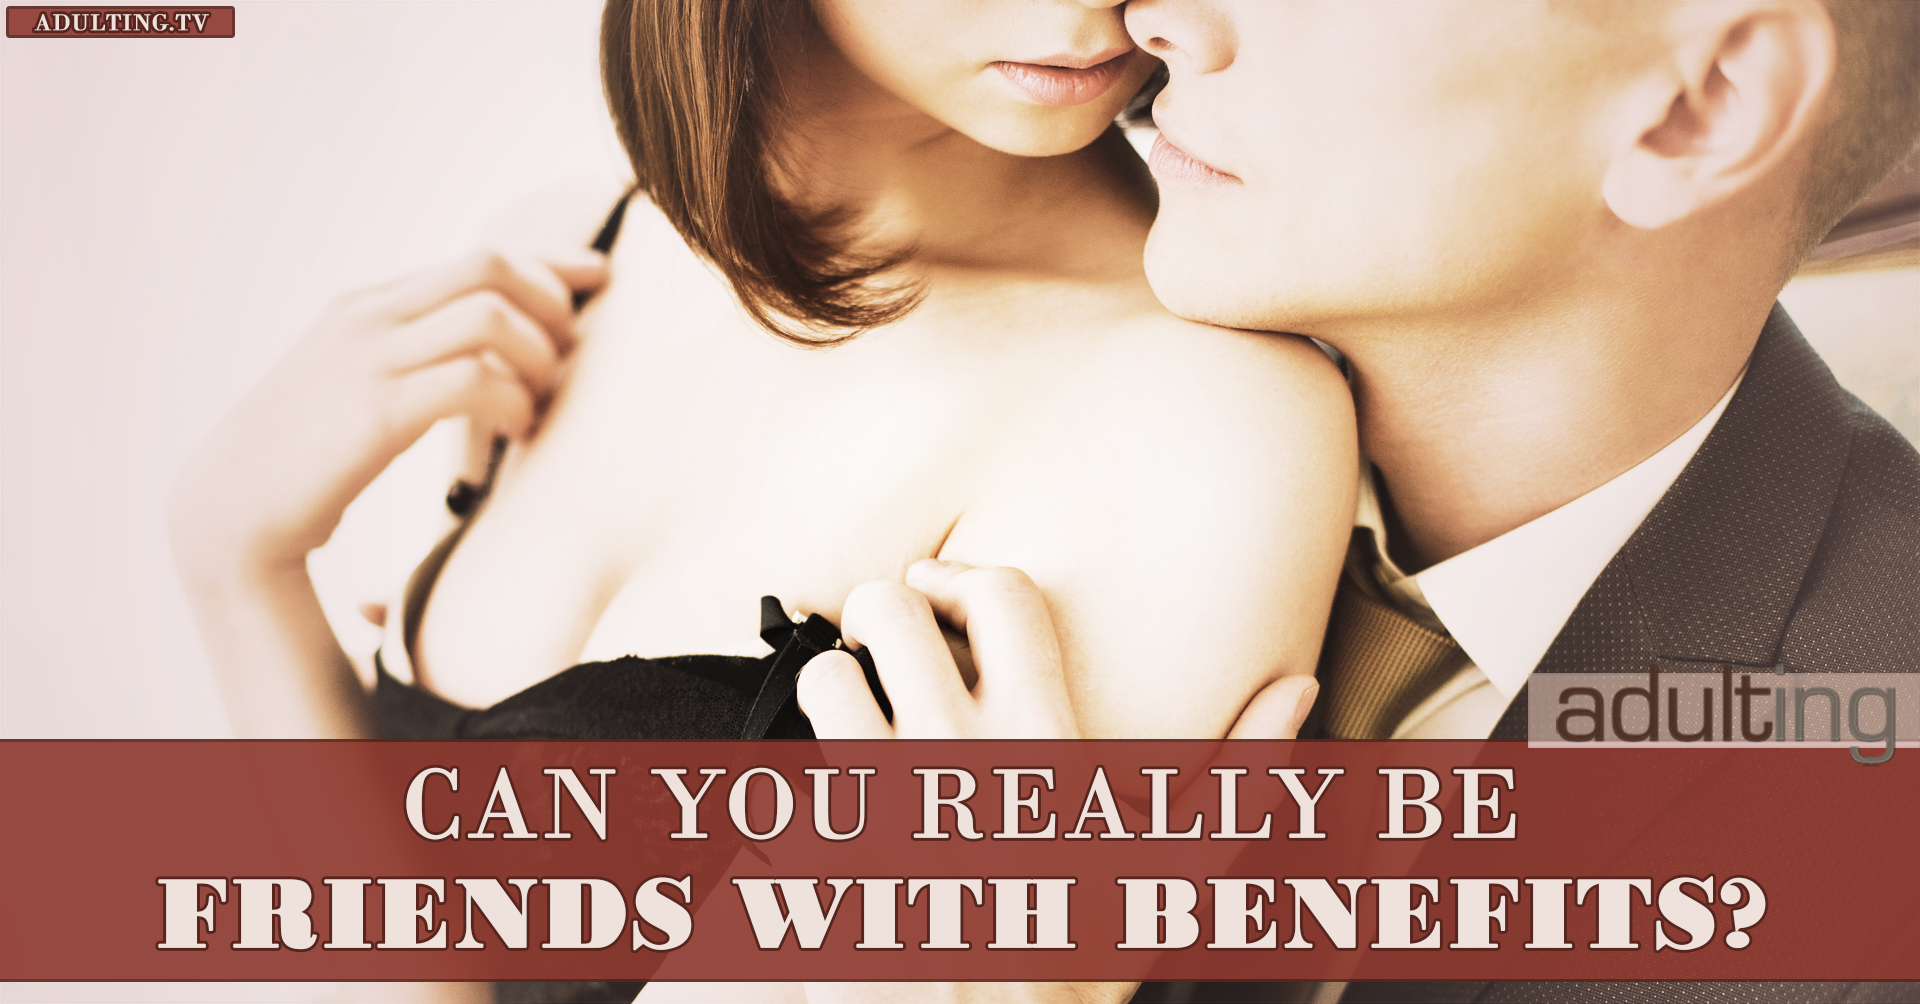 Friends with benefits article